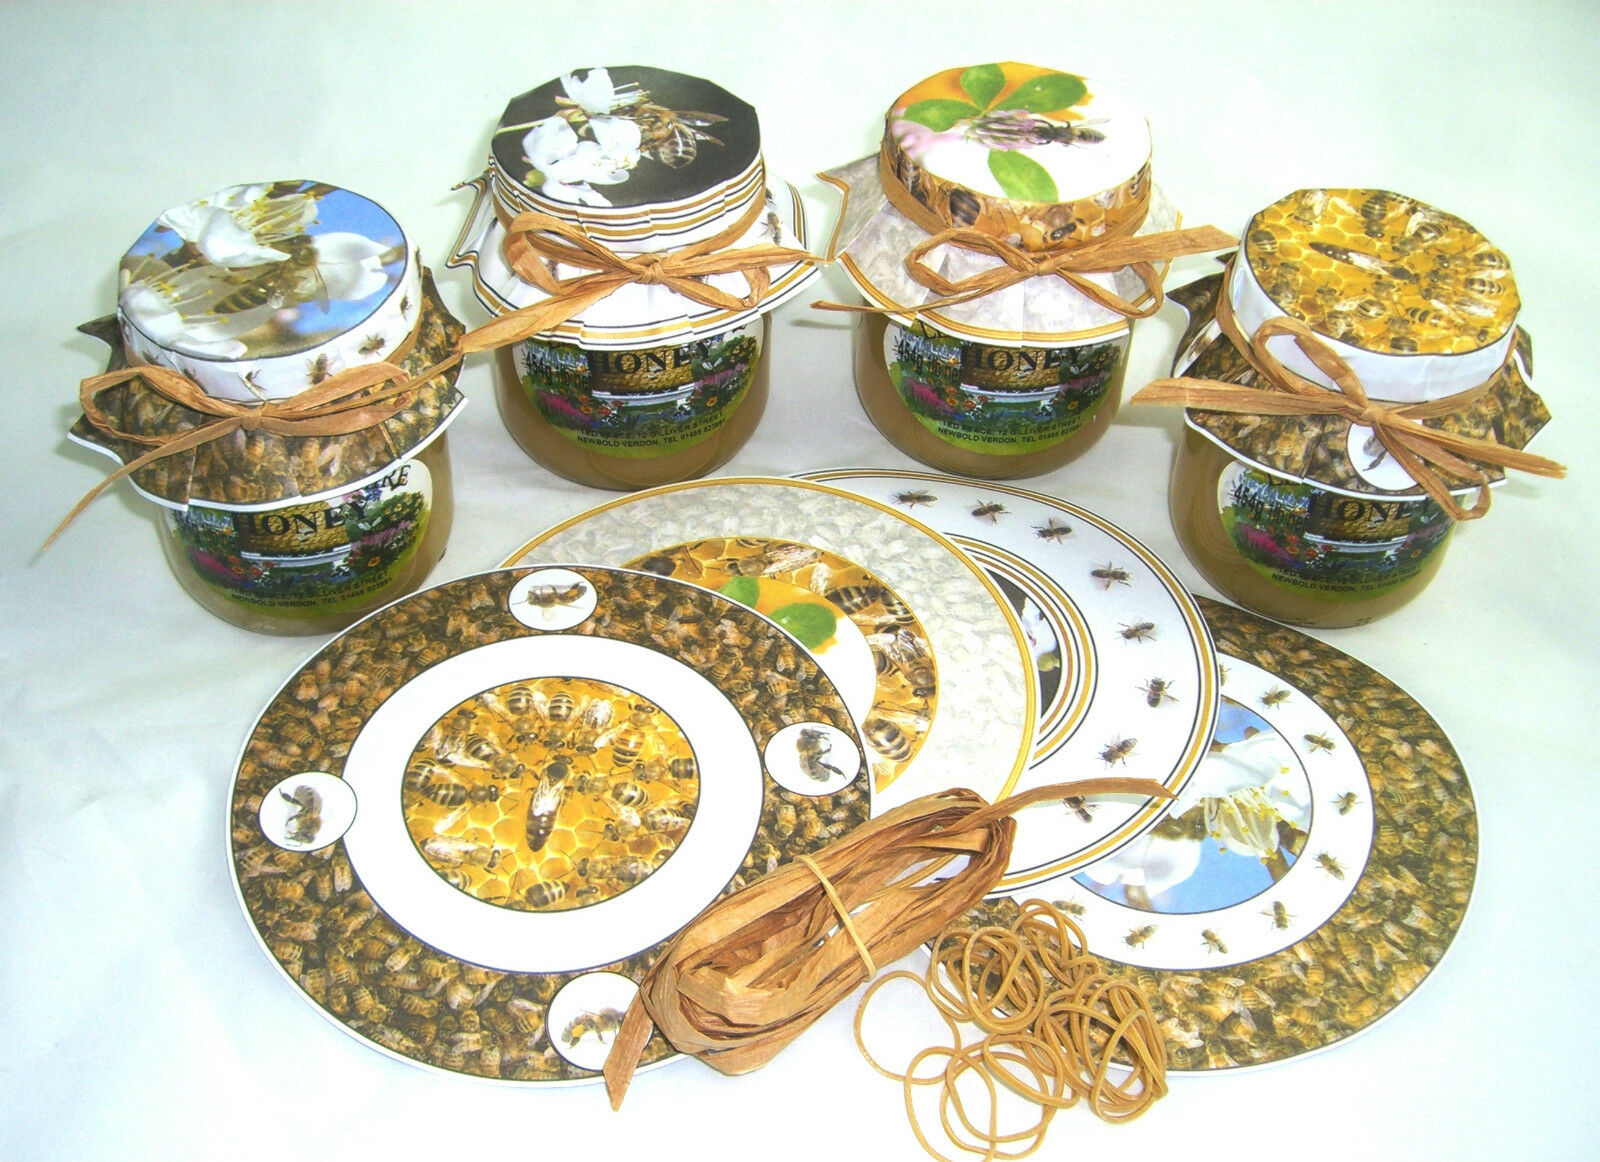 100 x Beekeeping HONEY JAR PAPERS - complete with rubber bands (25 of each)